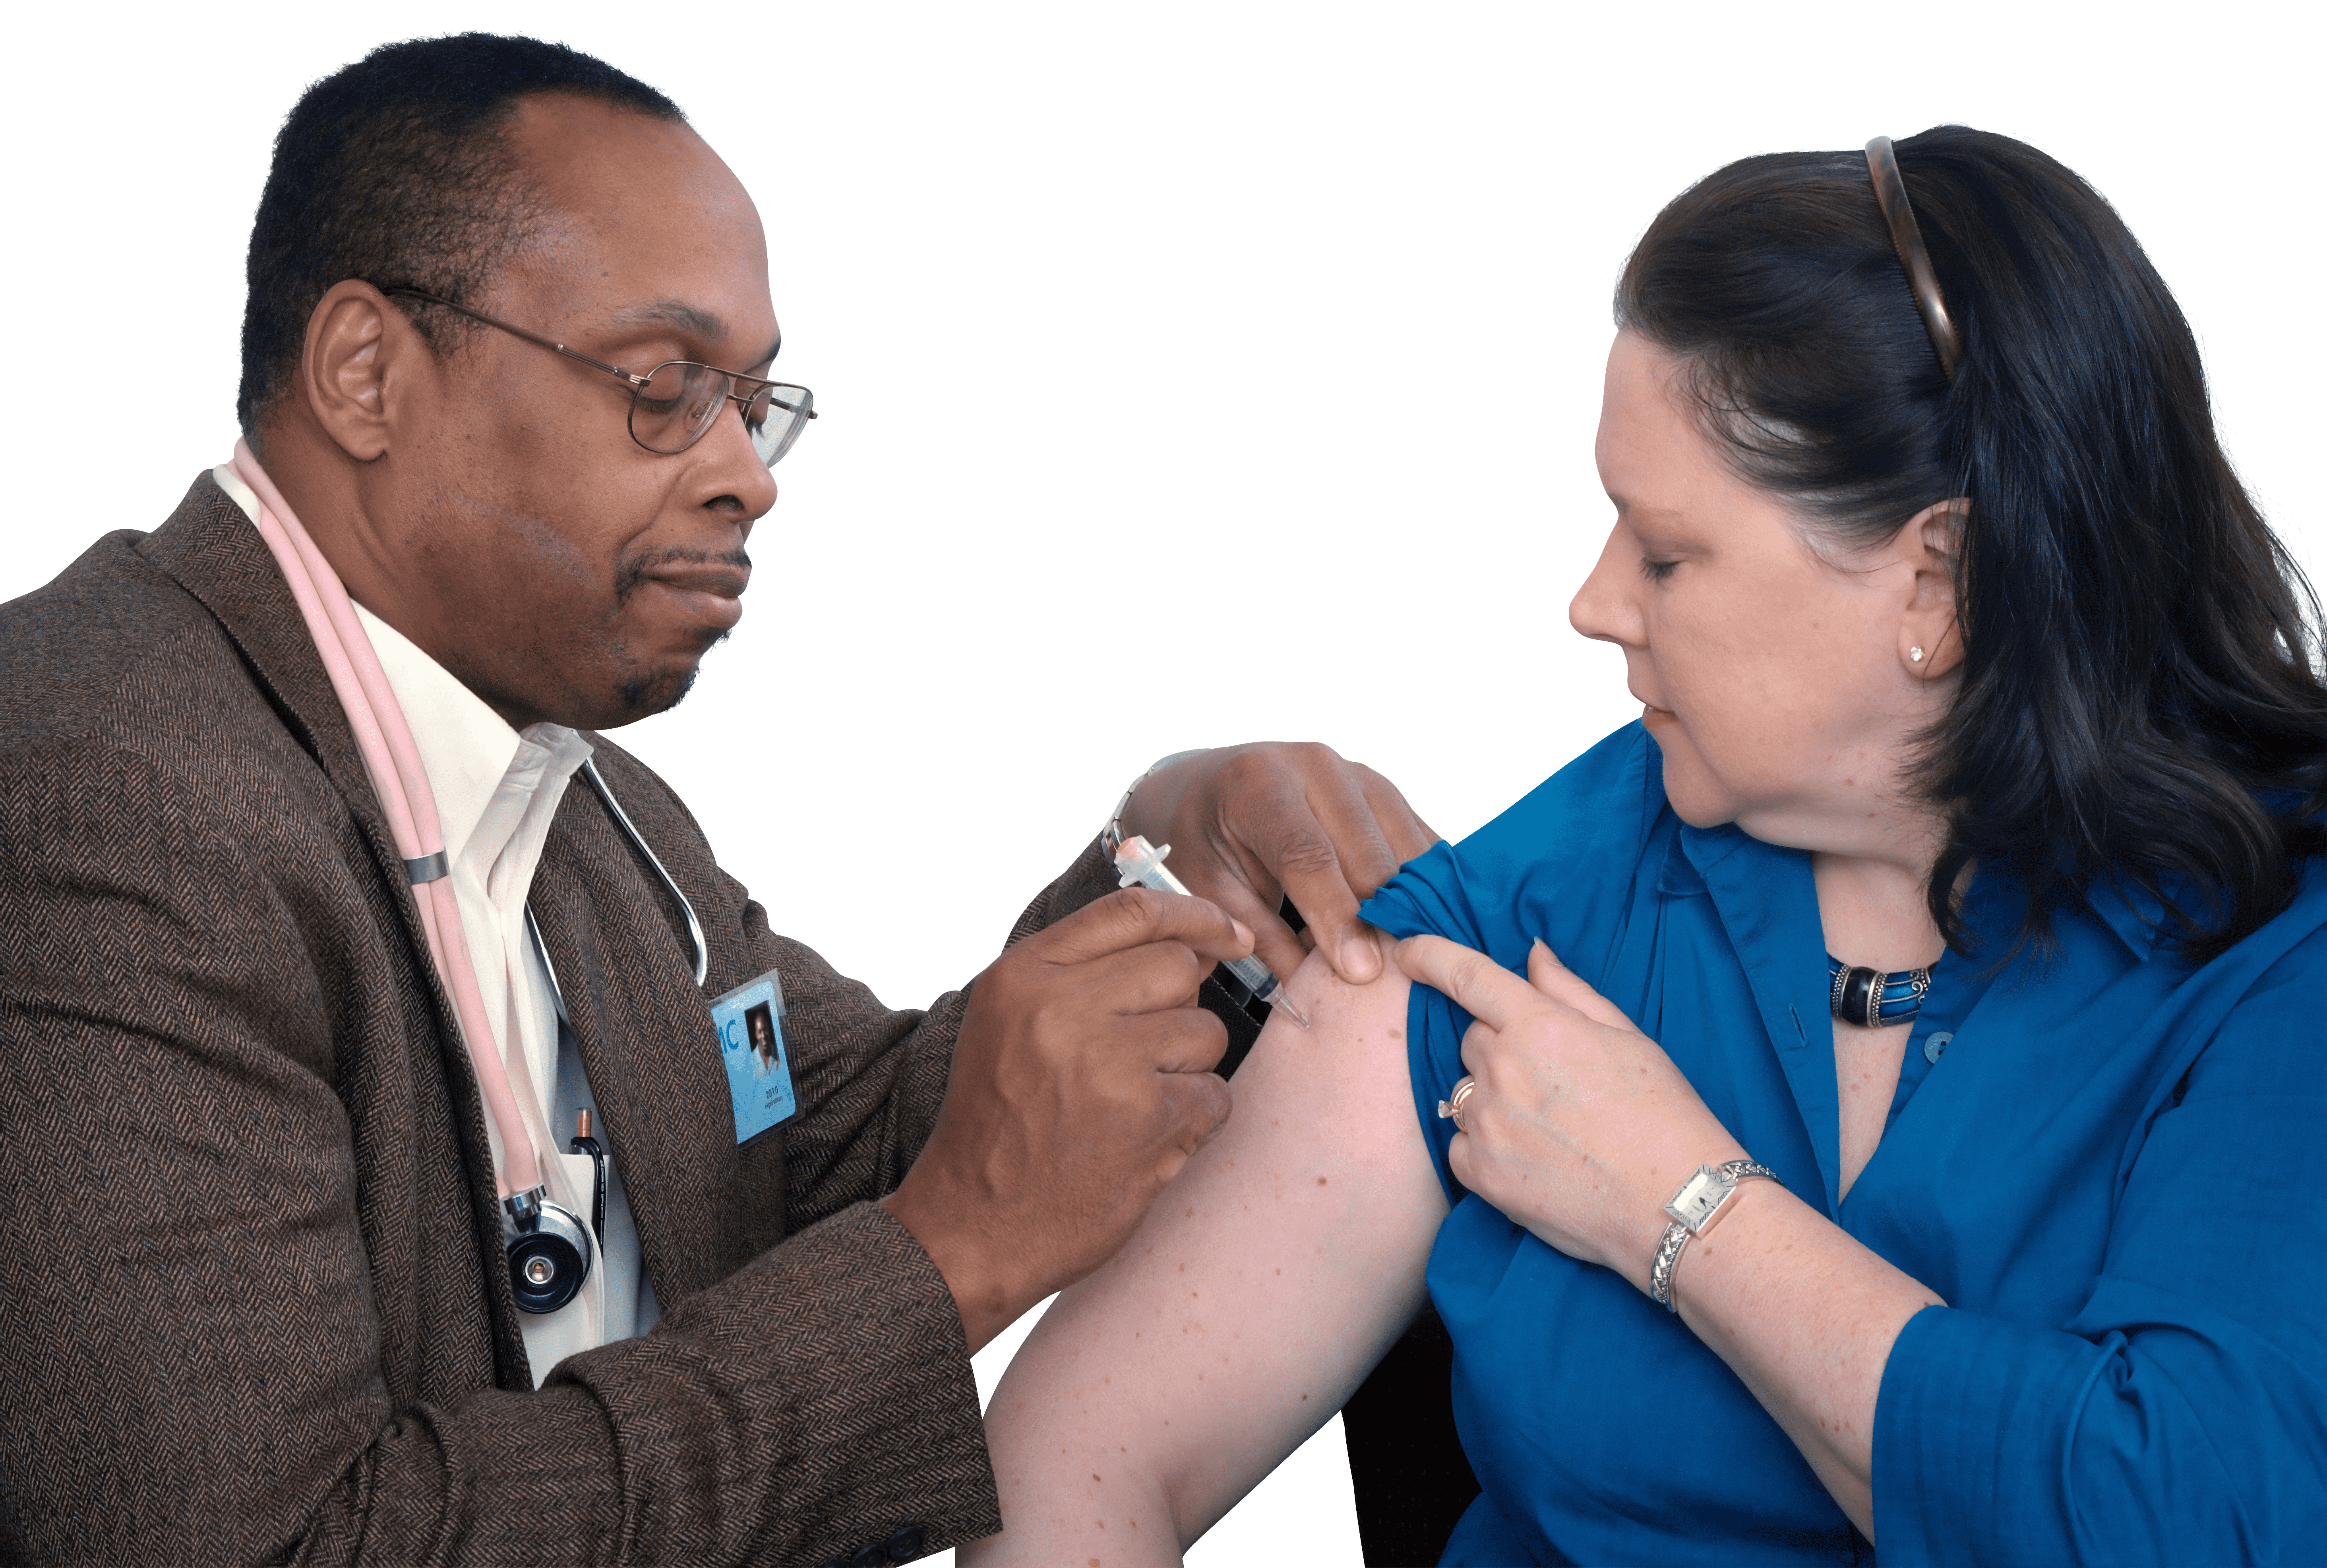 Doctor giving injection to a girl transparent background.png